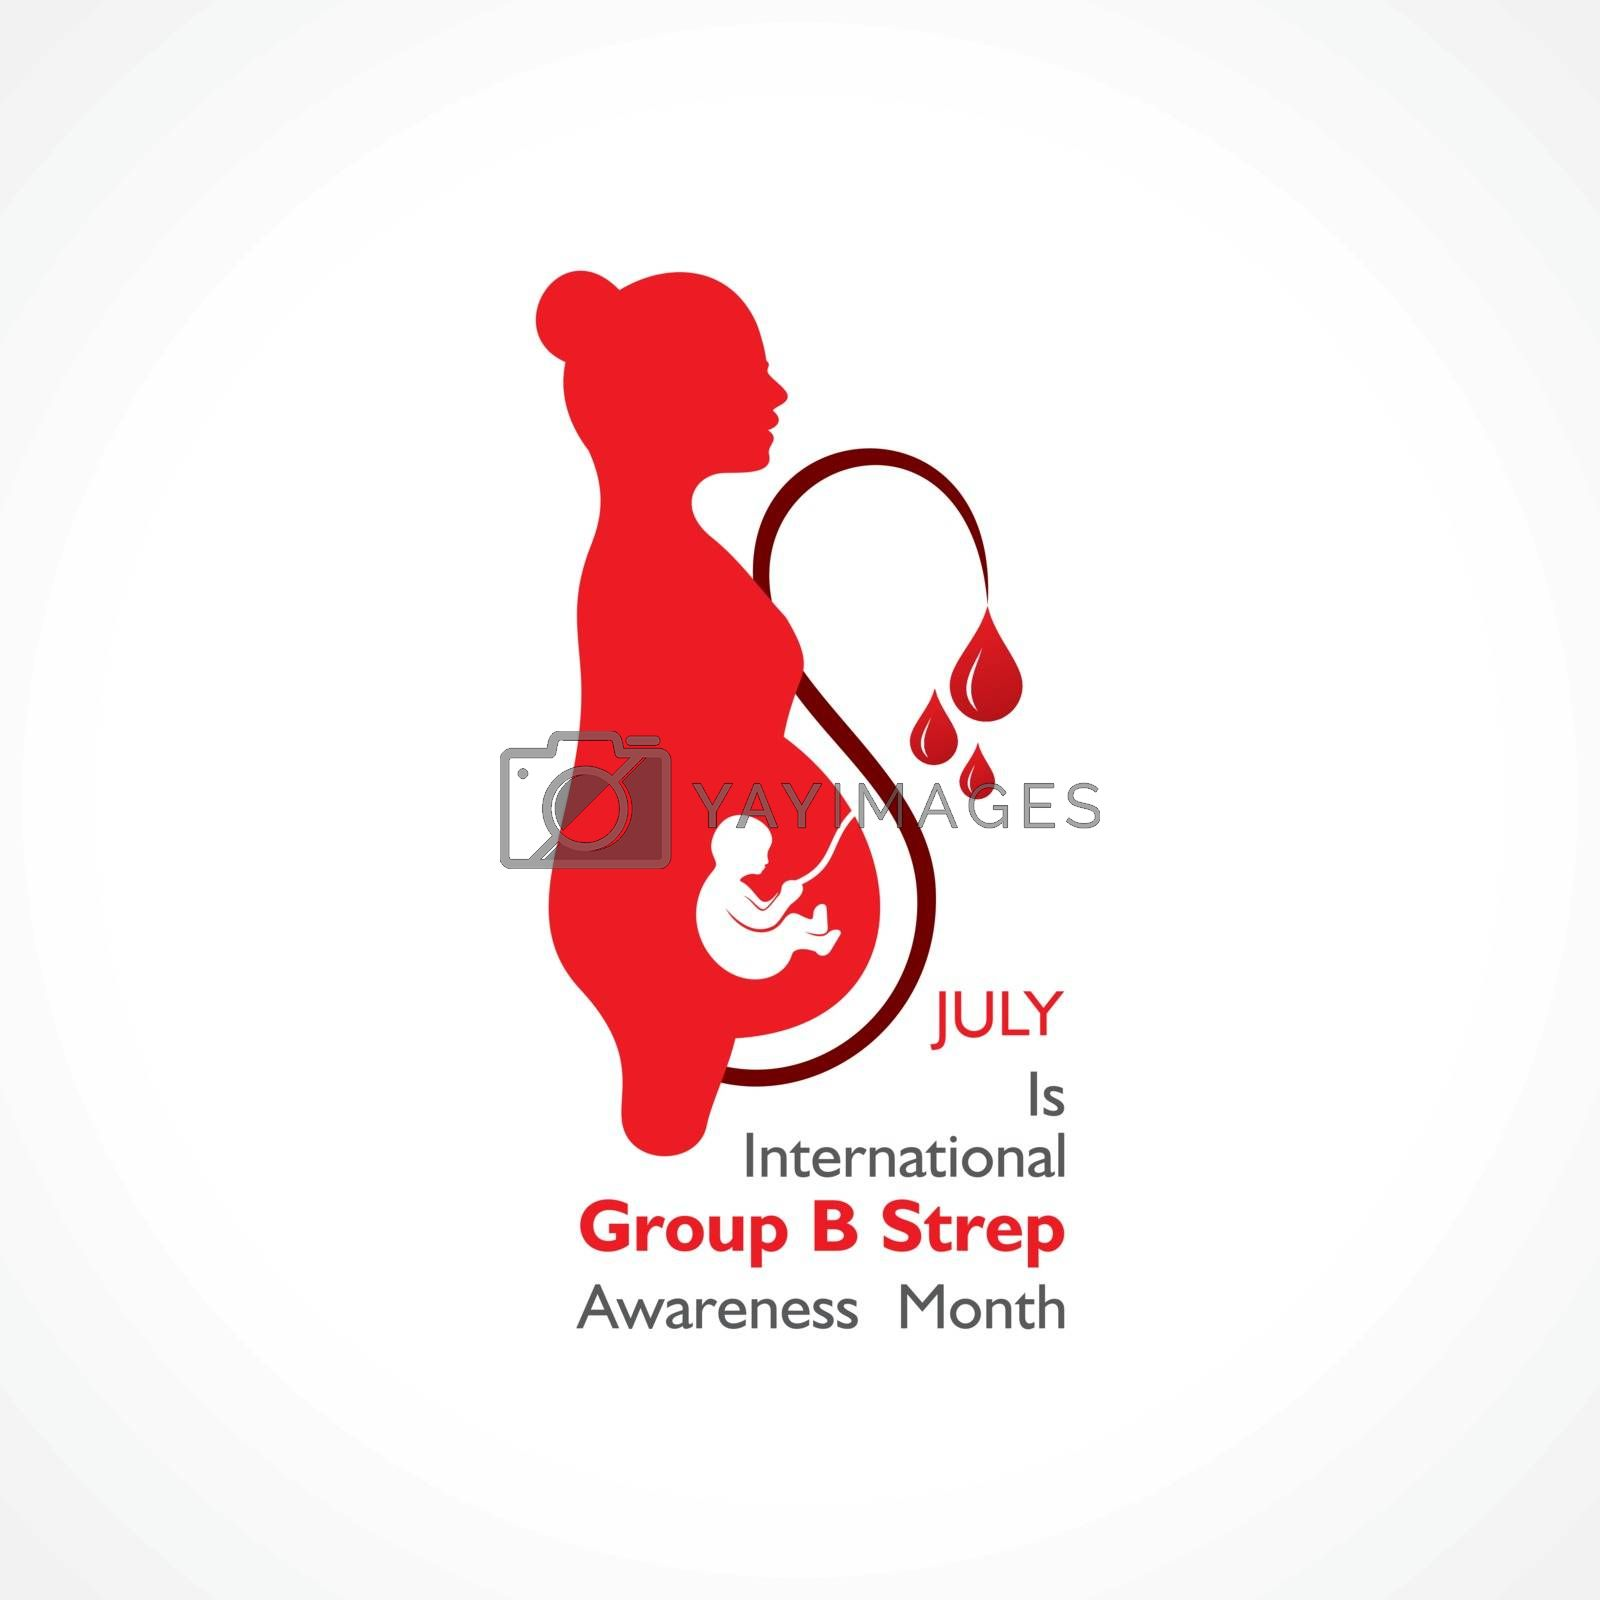 Vector Illustration for International Group B Strep Throat Awareness Month observed in JULY